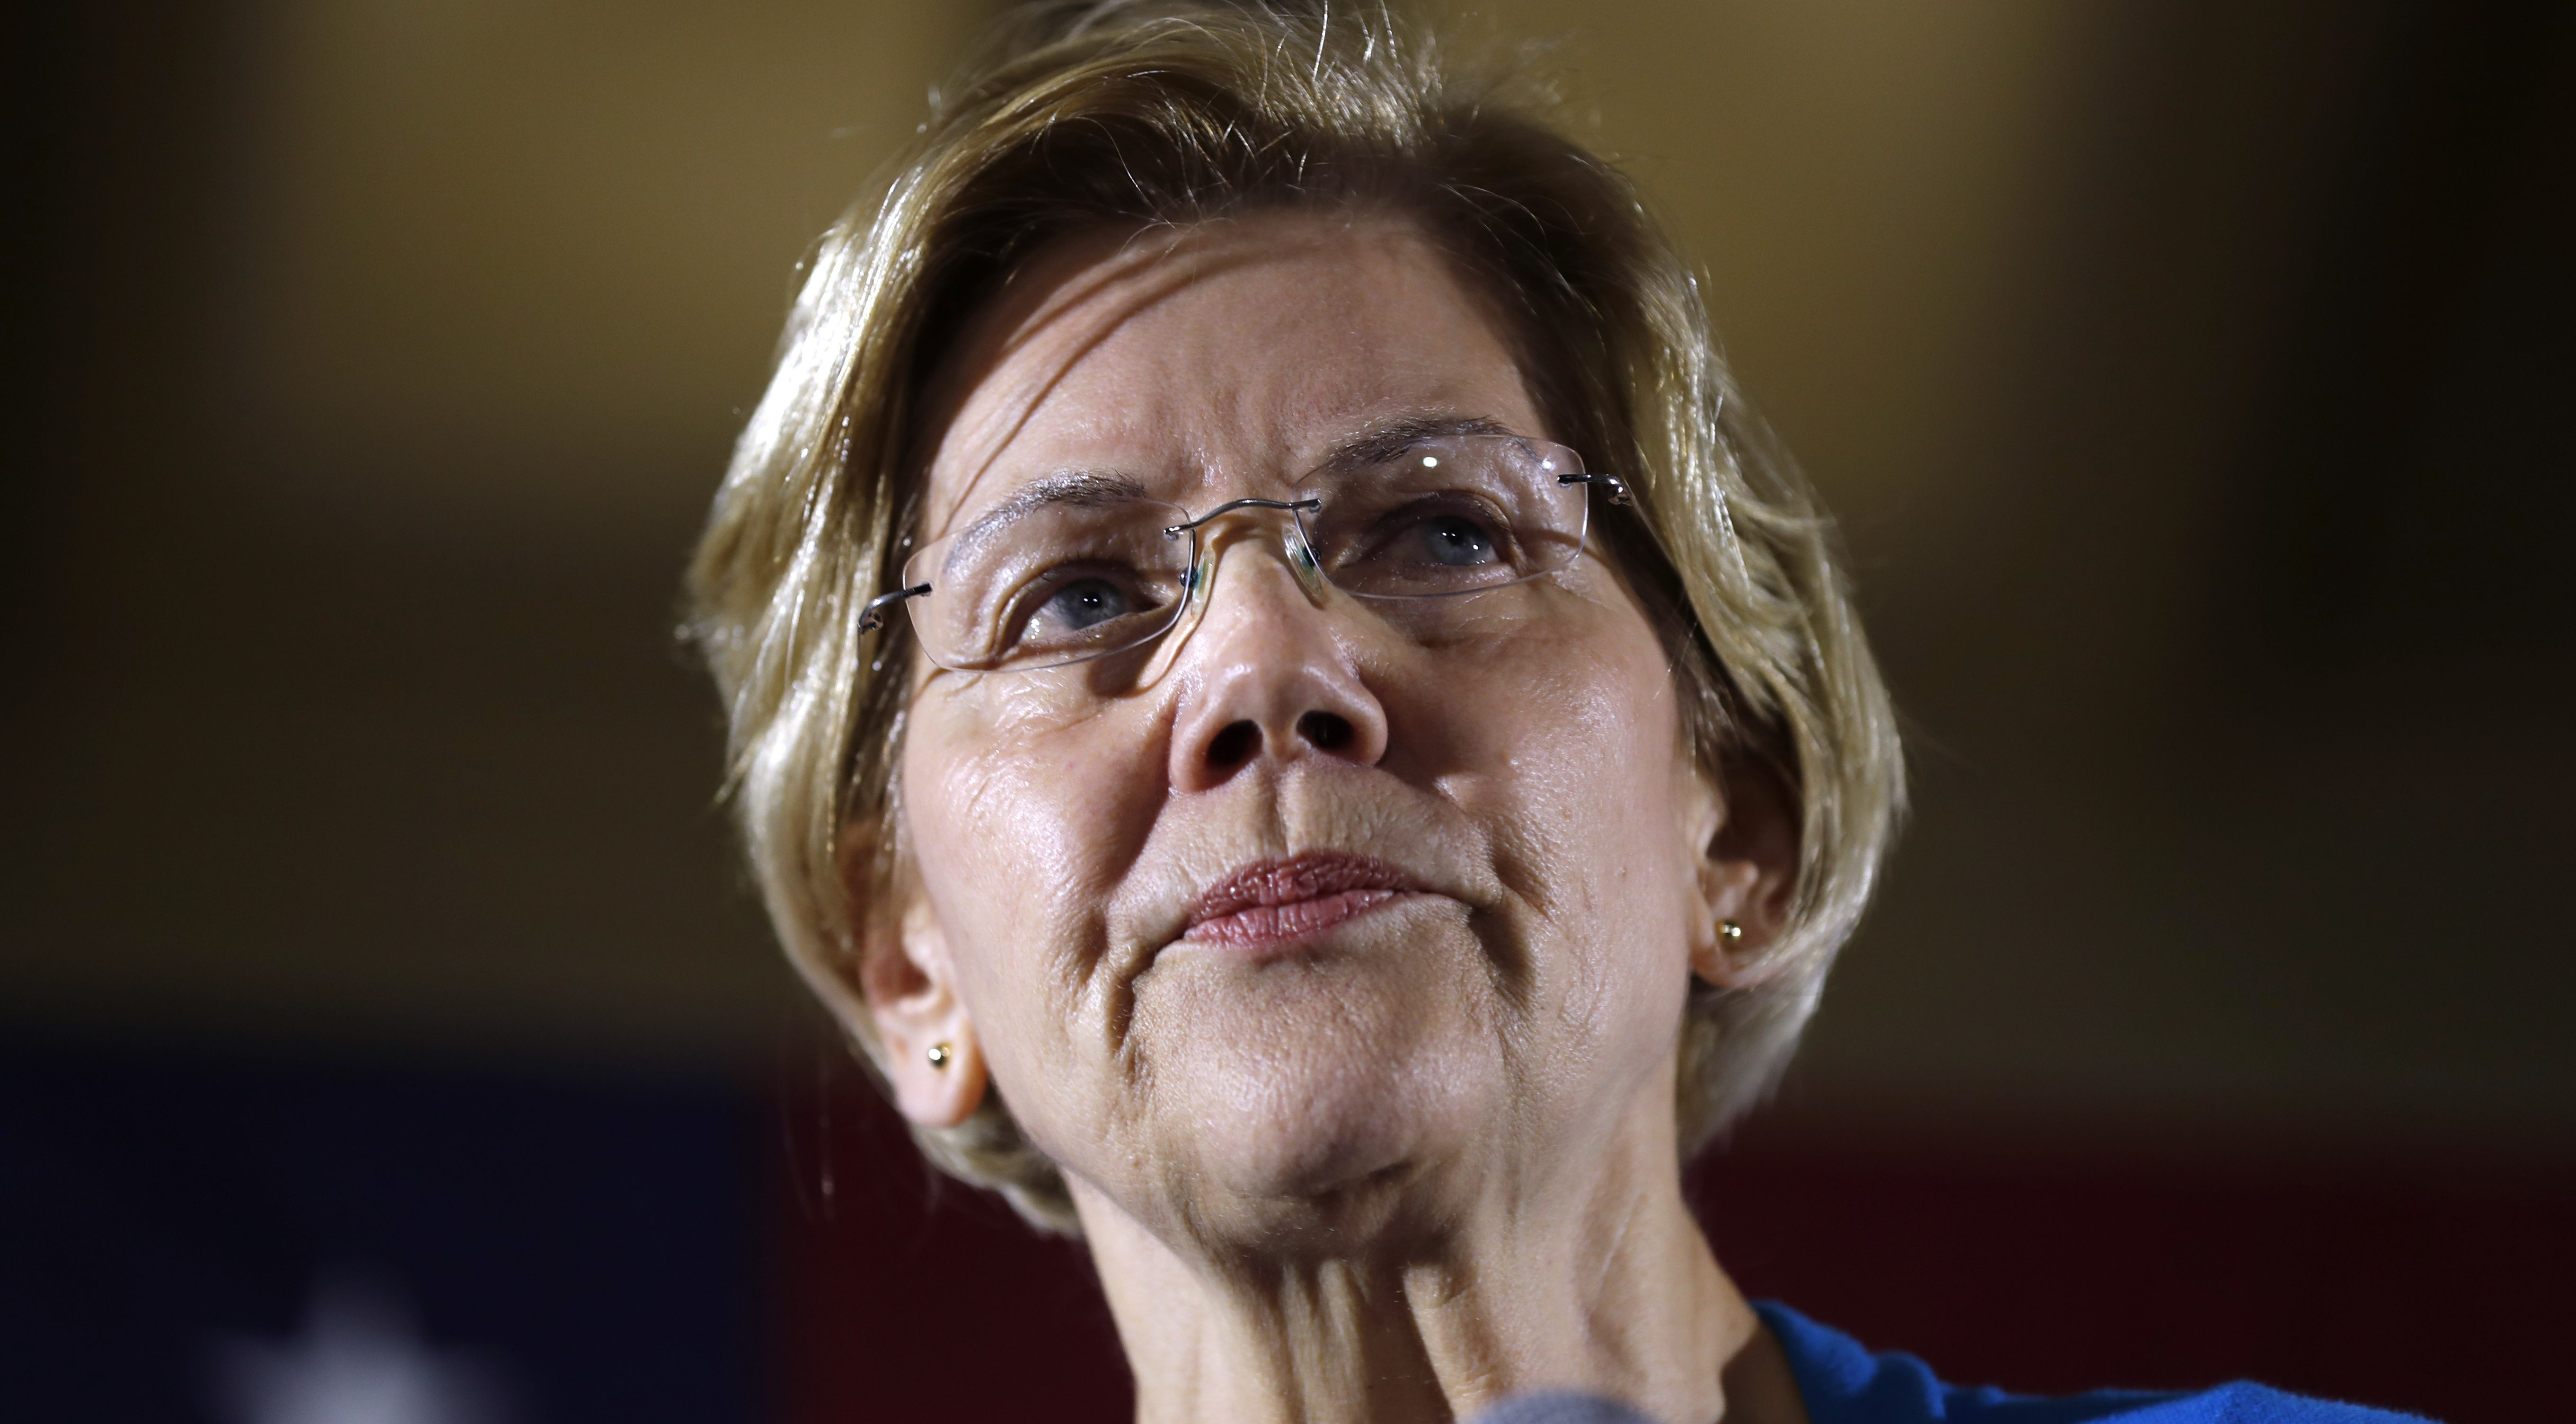 Warren compares herself, 'green manufacturing plan' to JFK and Apollo mission